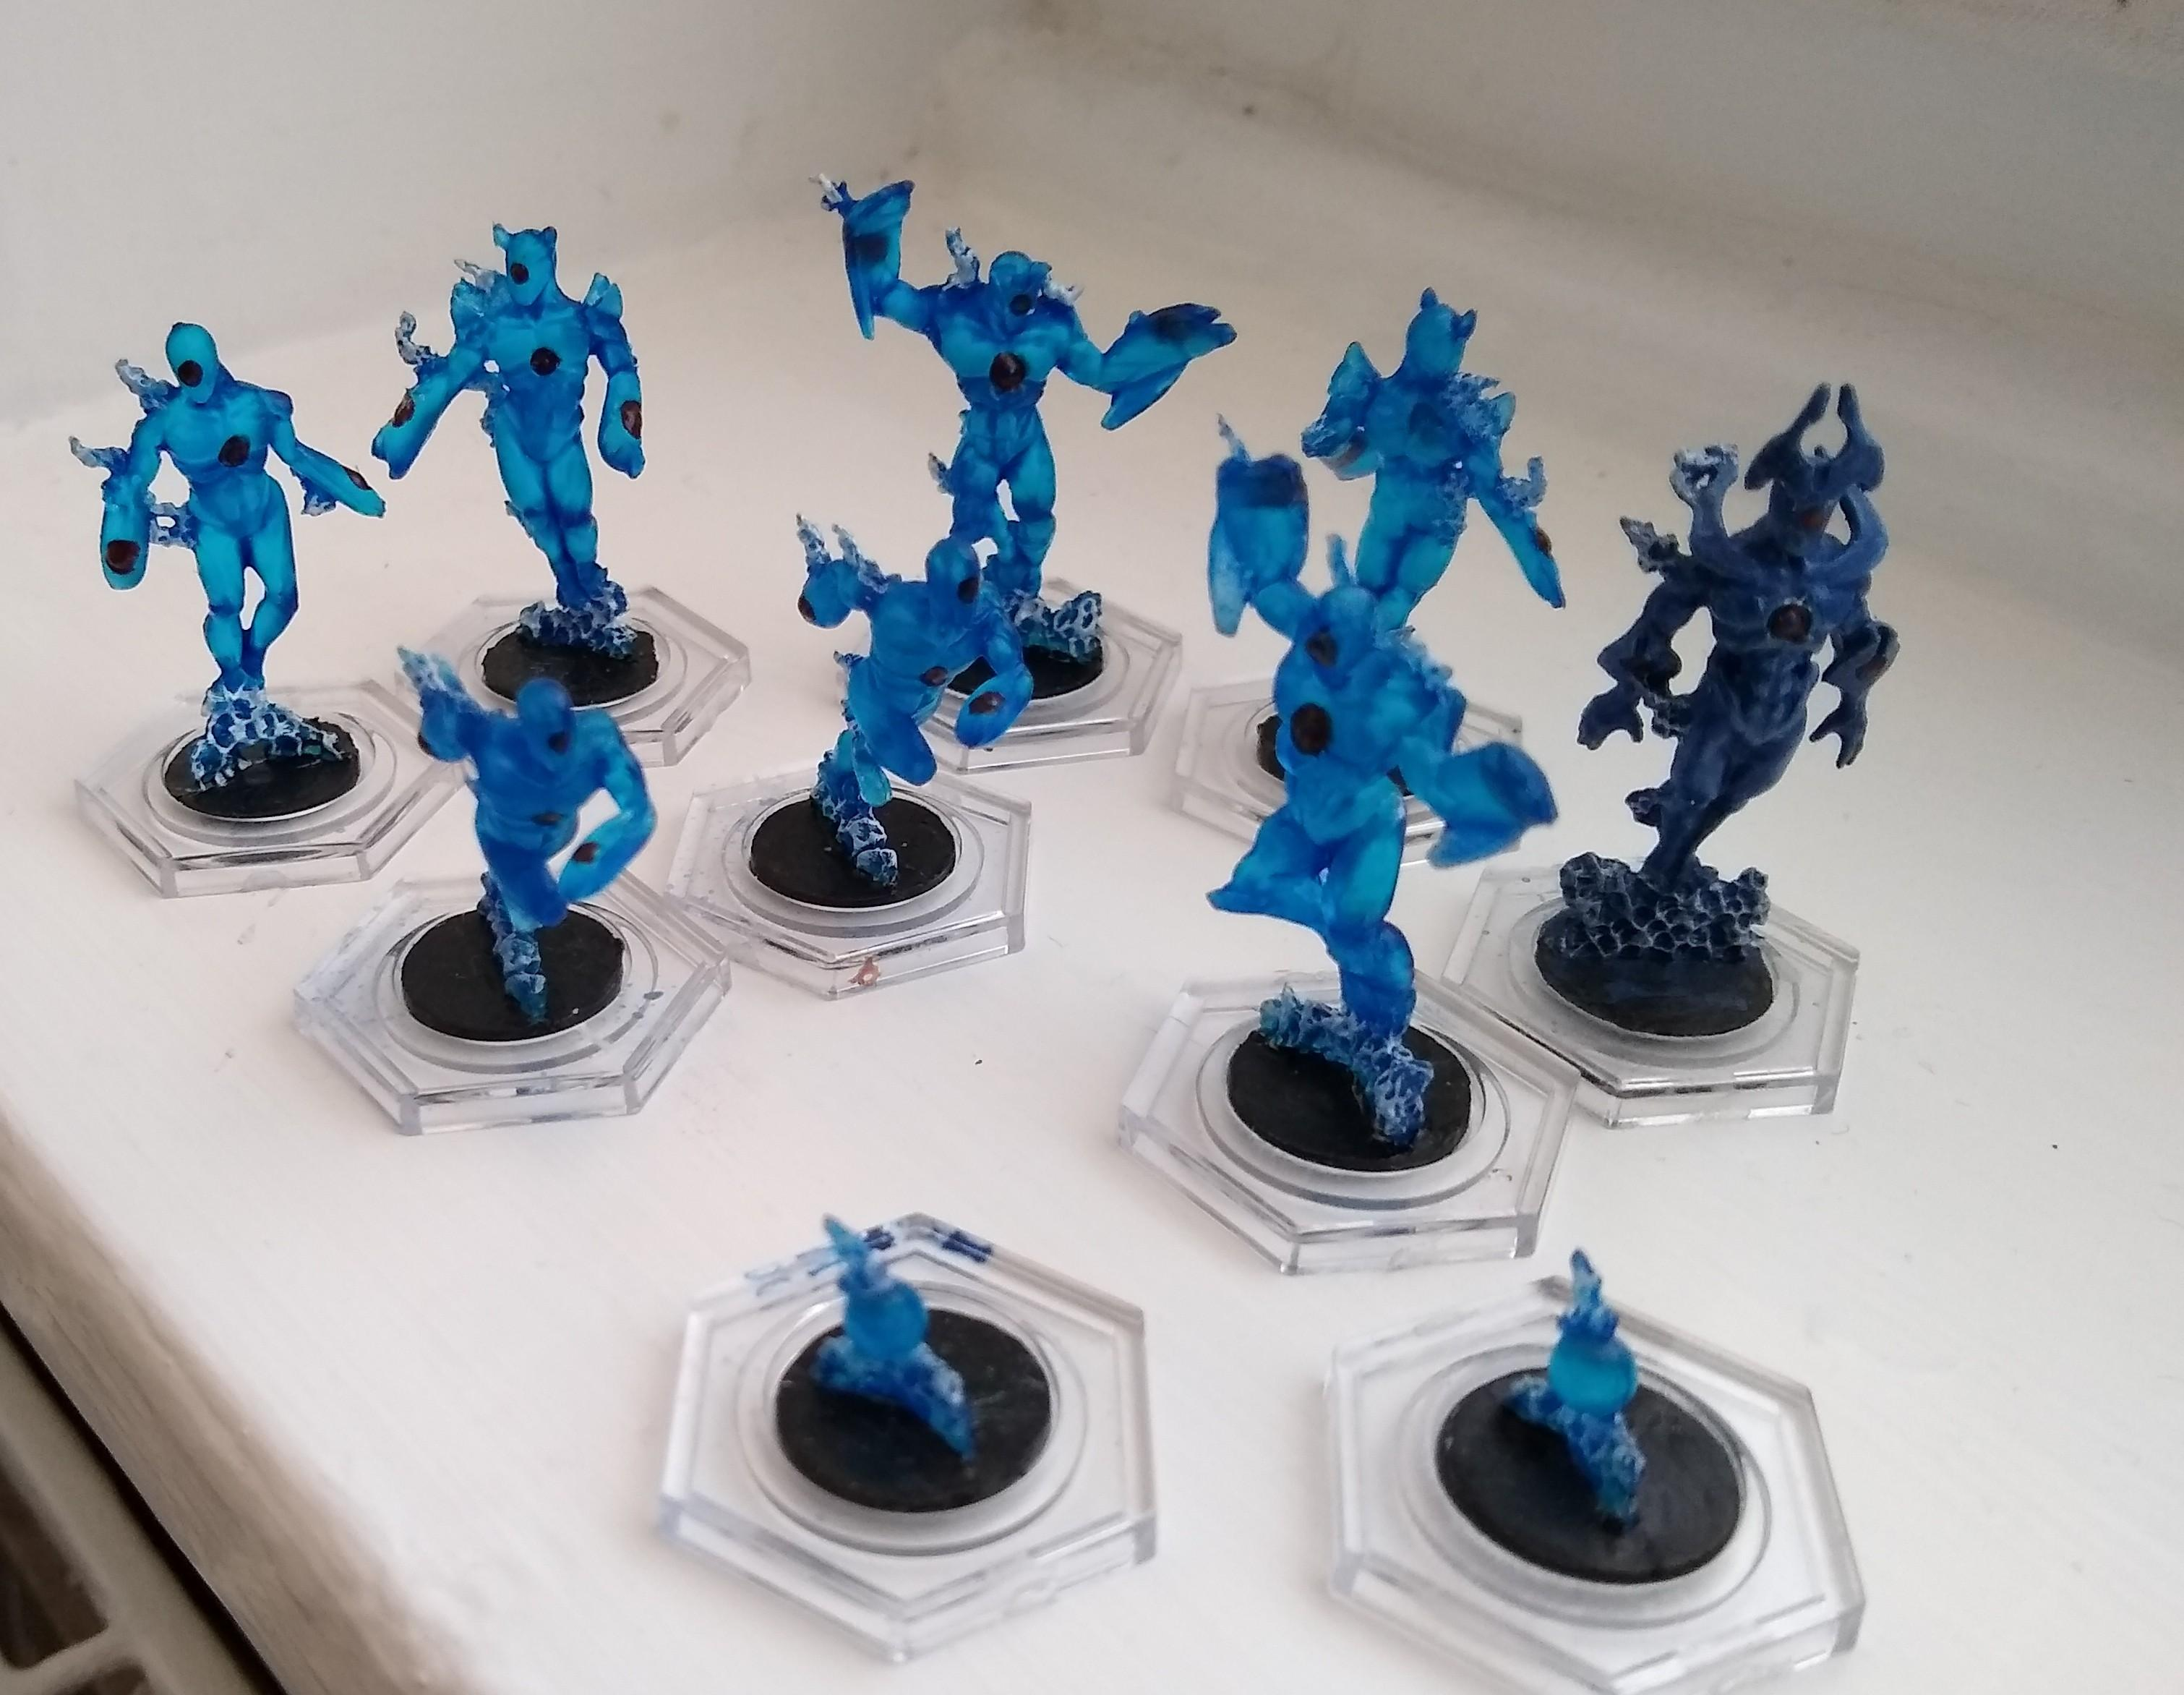 Trans blue ghosts